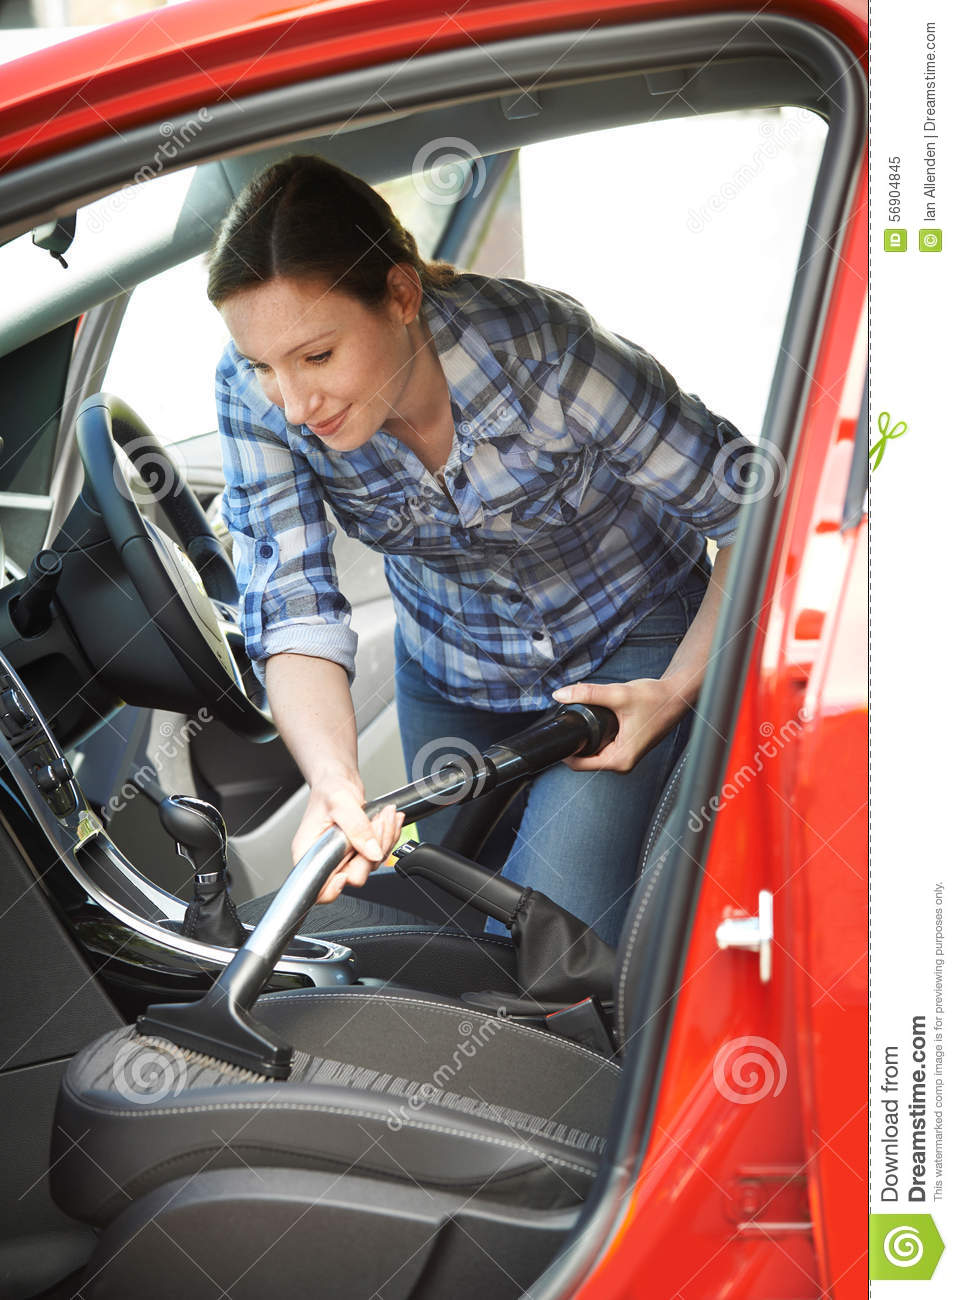 woman cleaning inside of car using vacuum cleaner stock photo image 56904845. Black Bedroom Furniture Sets. Home Design Ideas